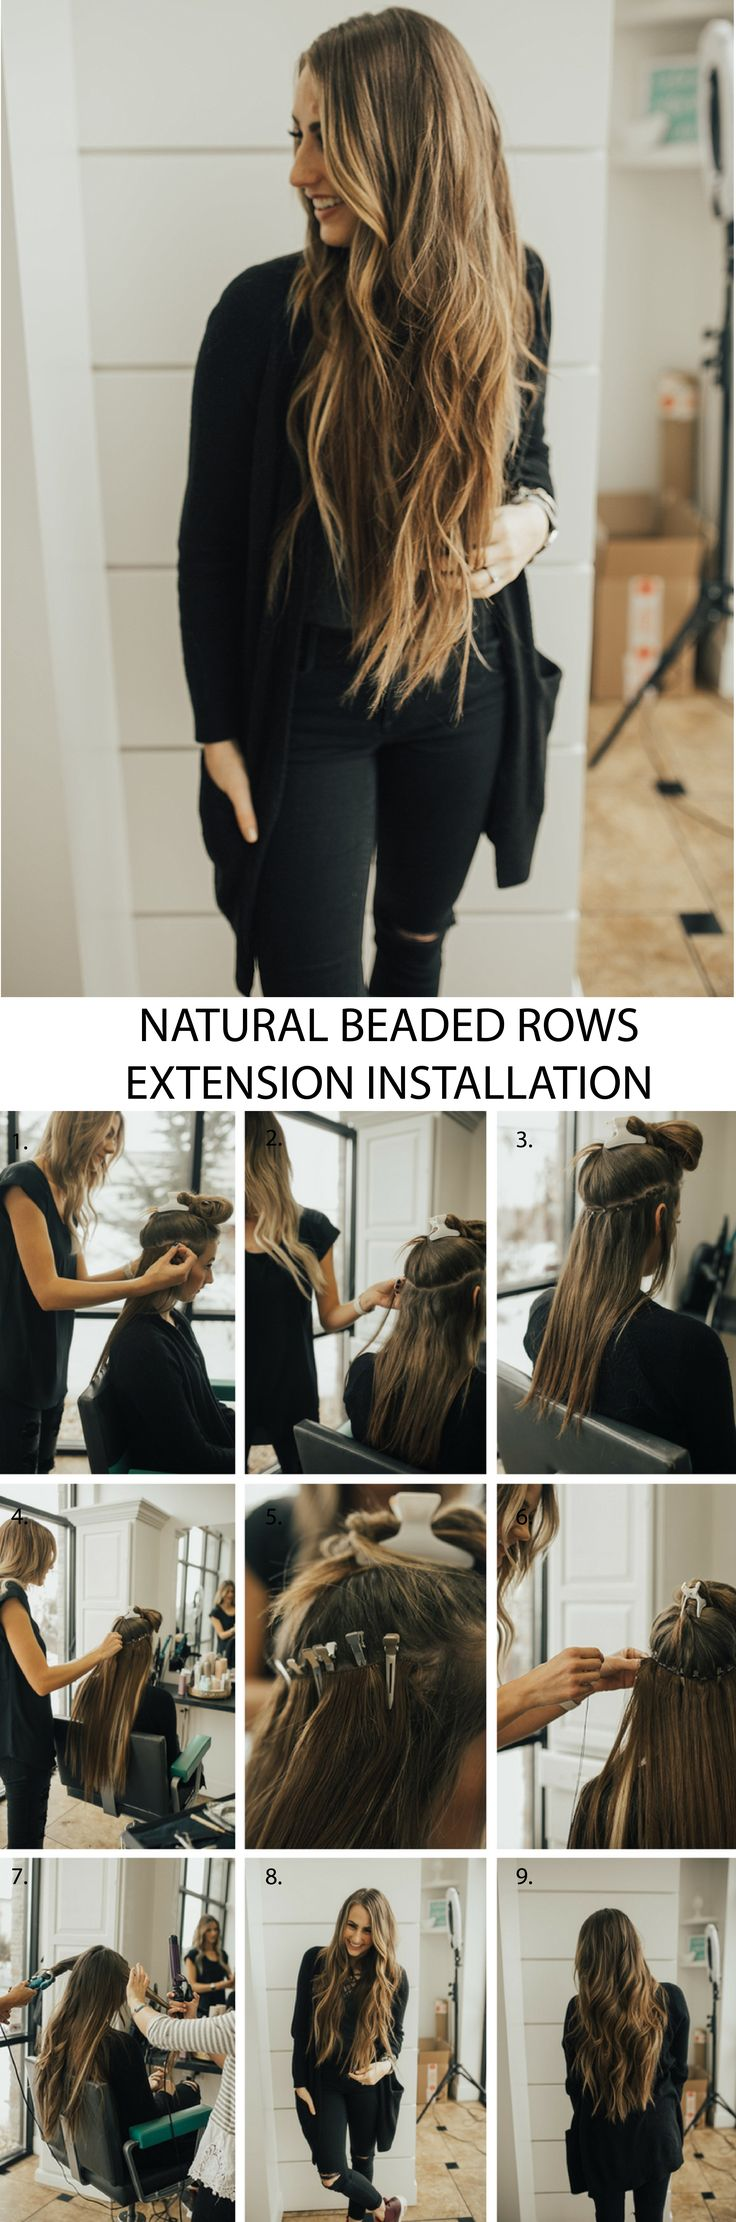 Step by step tutorial for natural beaded row hair extensions with Bohyme hair.